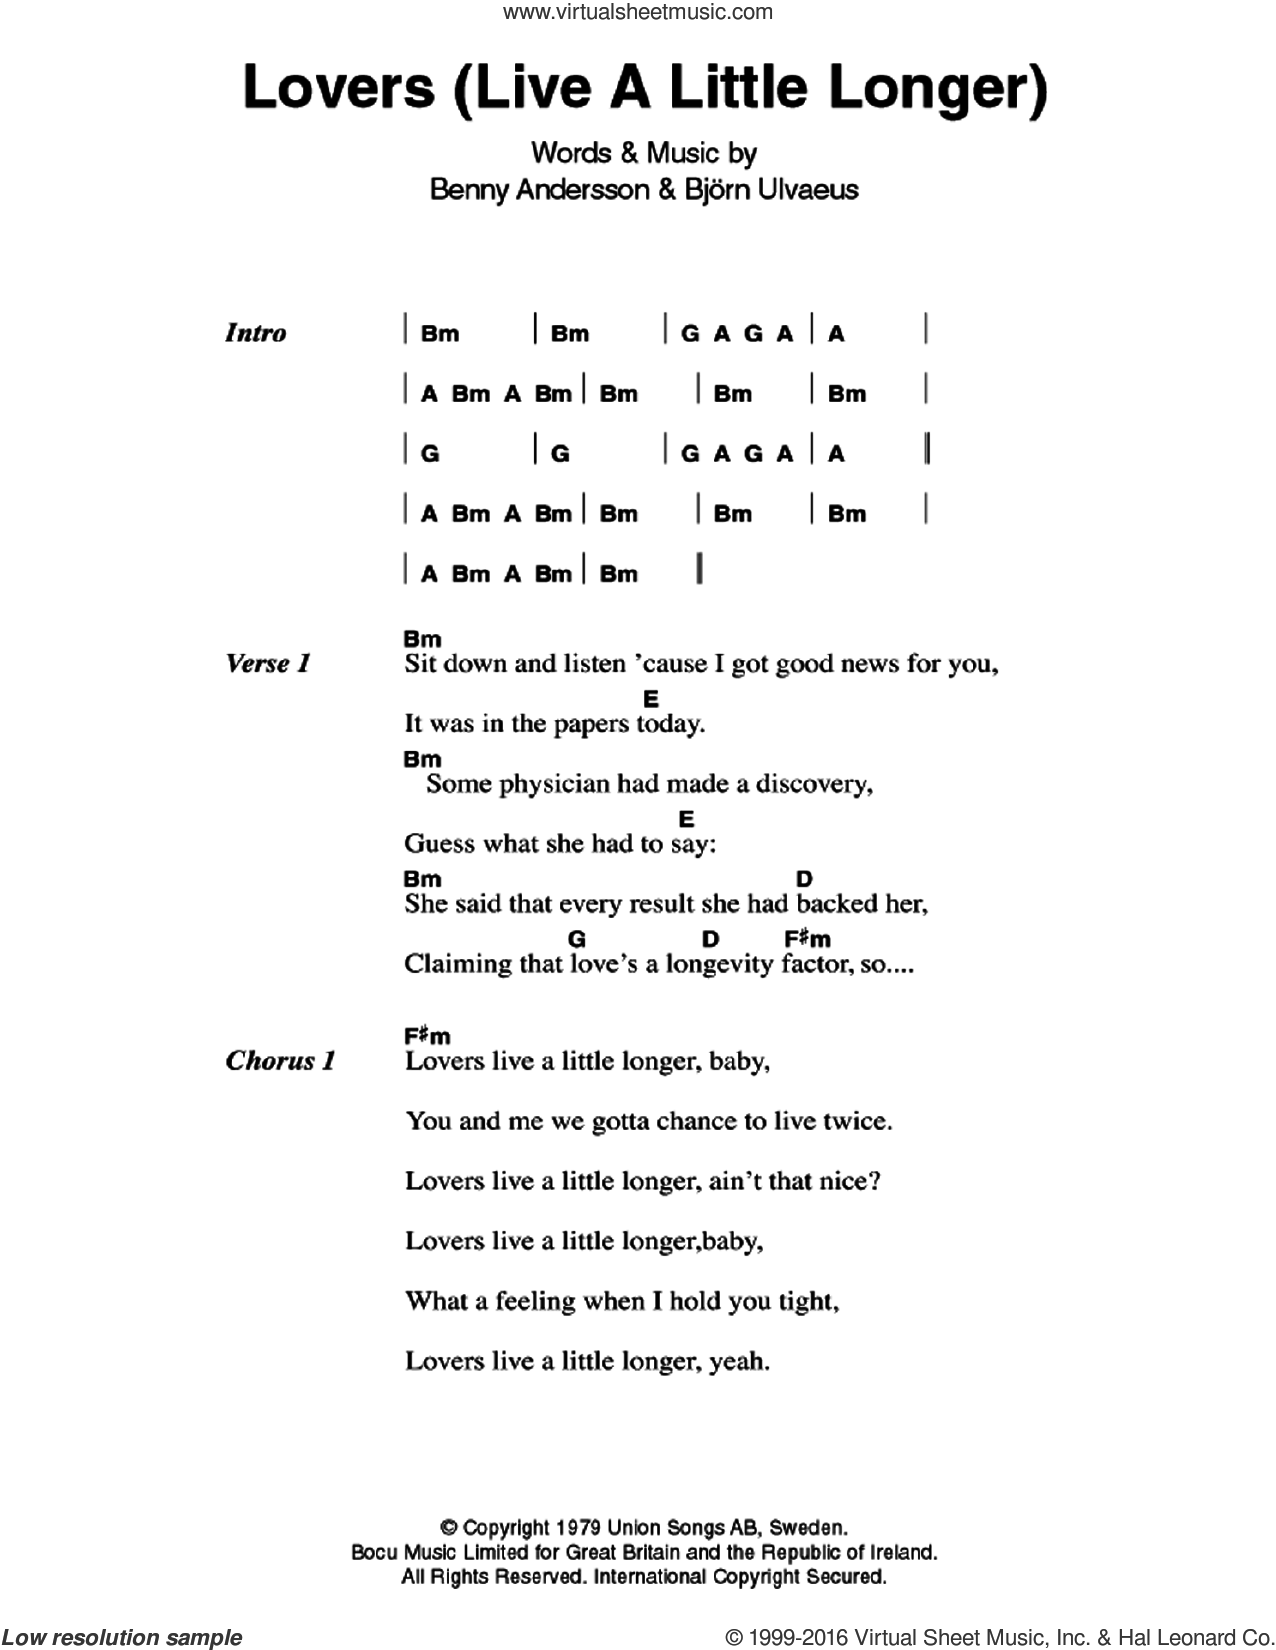 Lovers (Live A Little Longer) sheet music for guitar (chords) by Bjorn Ulvaeus, ABBA and Benny Andersson. Score Image Preview.